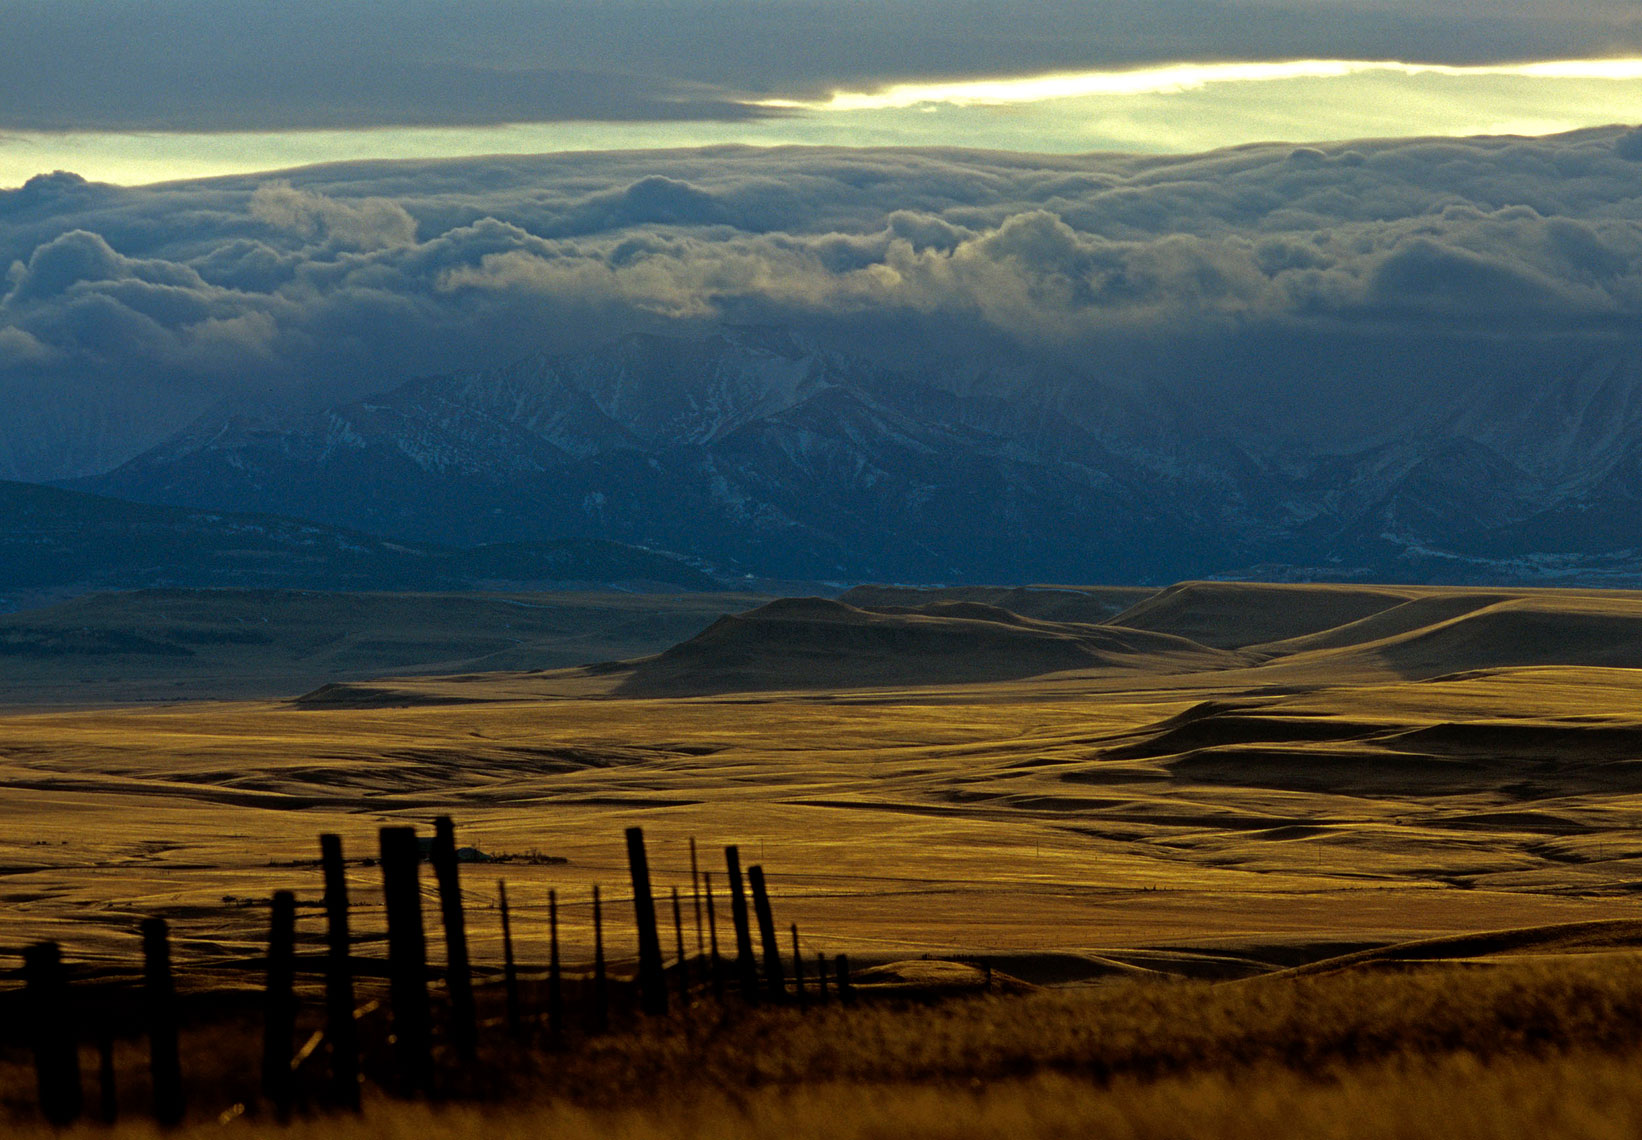 DAP landscape Montana Crazy Mountains film